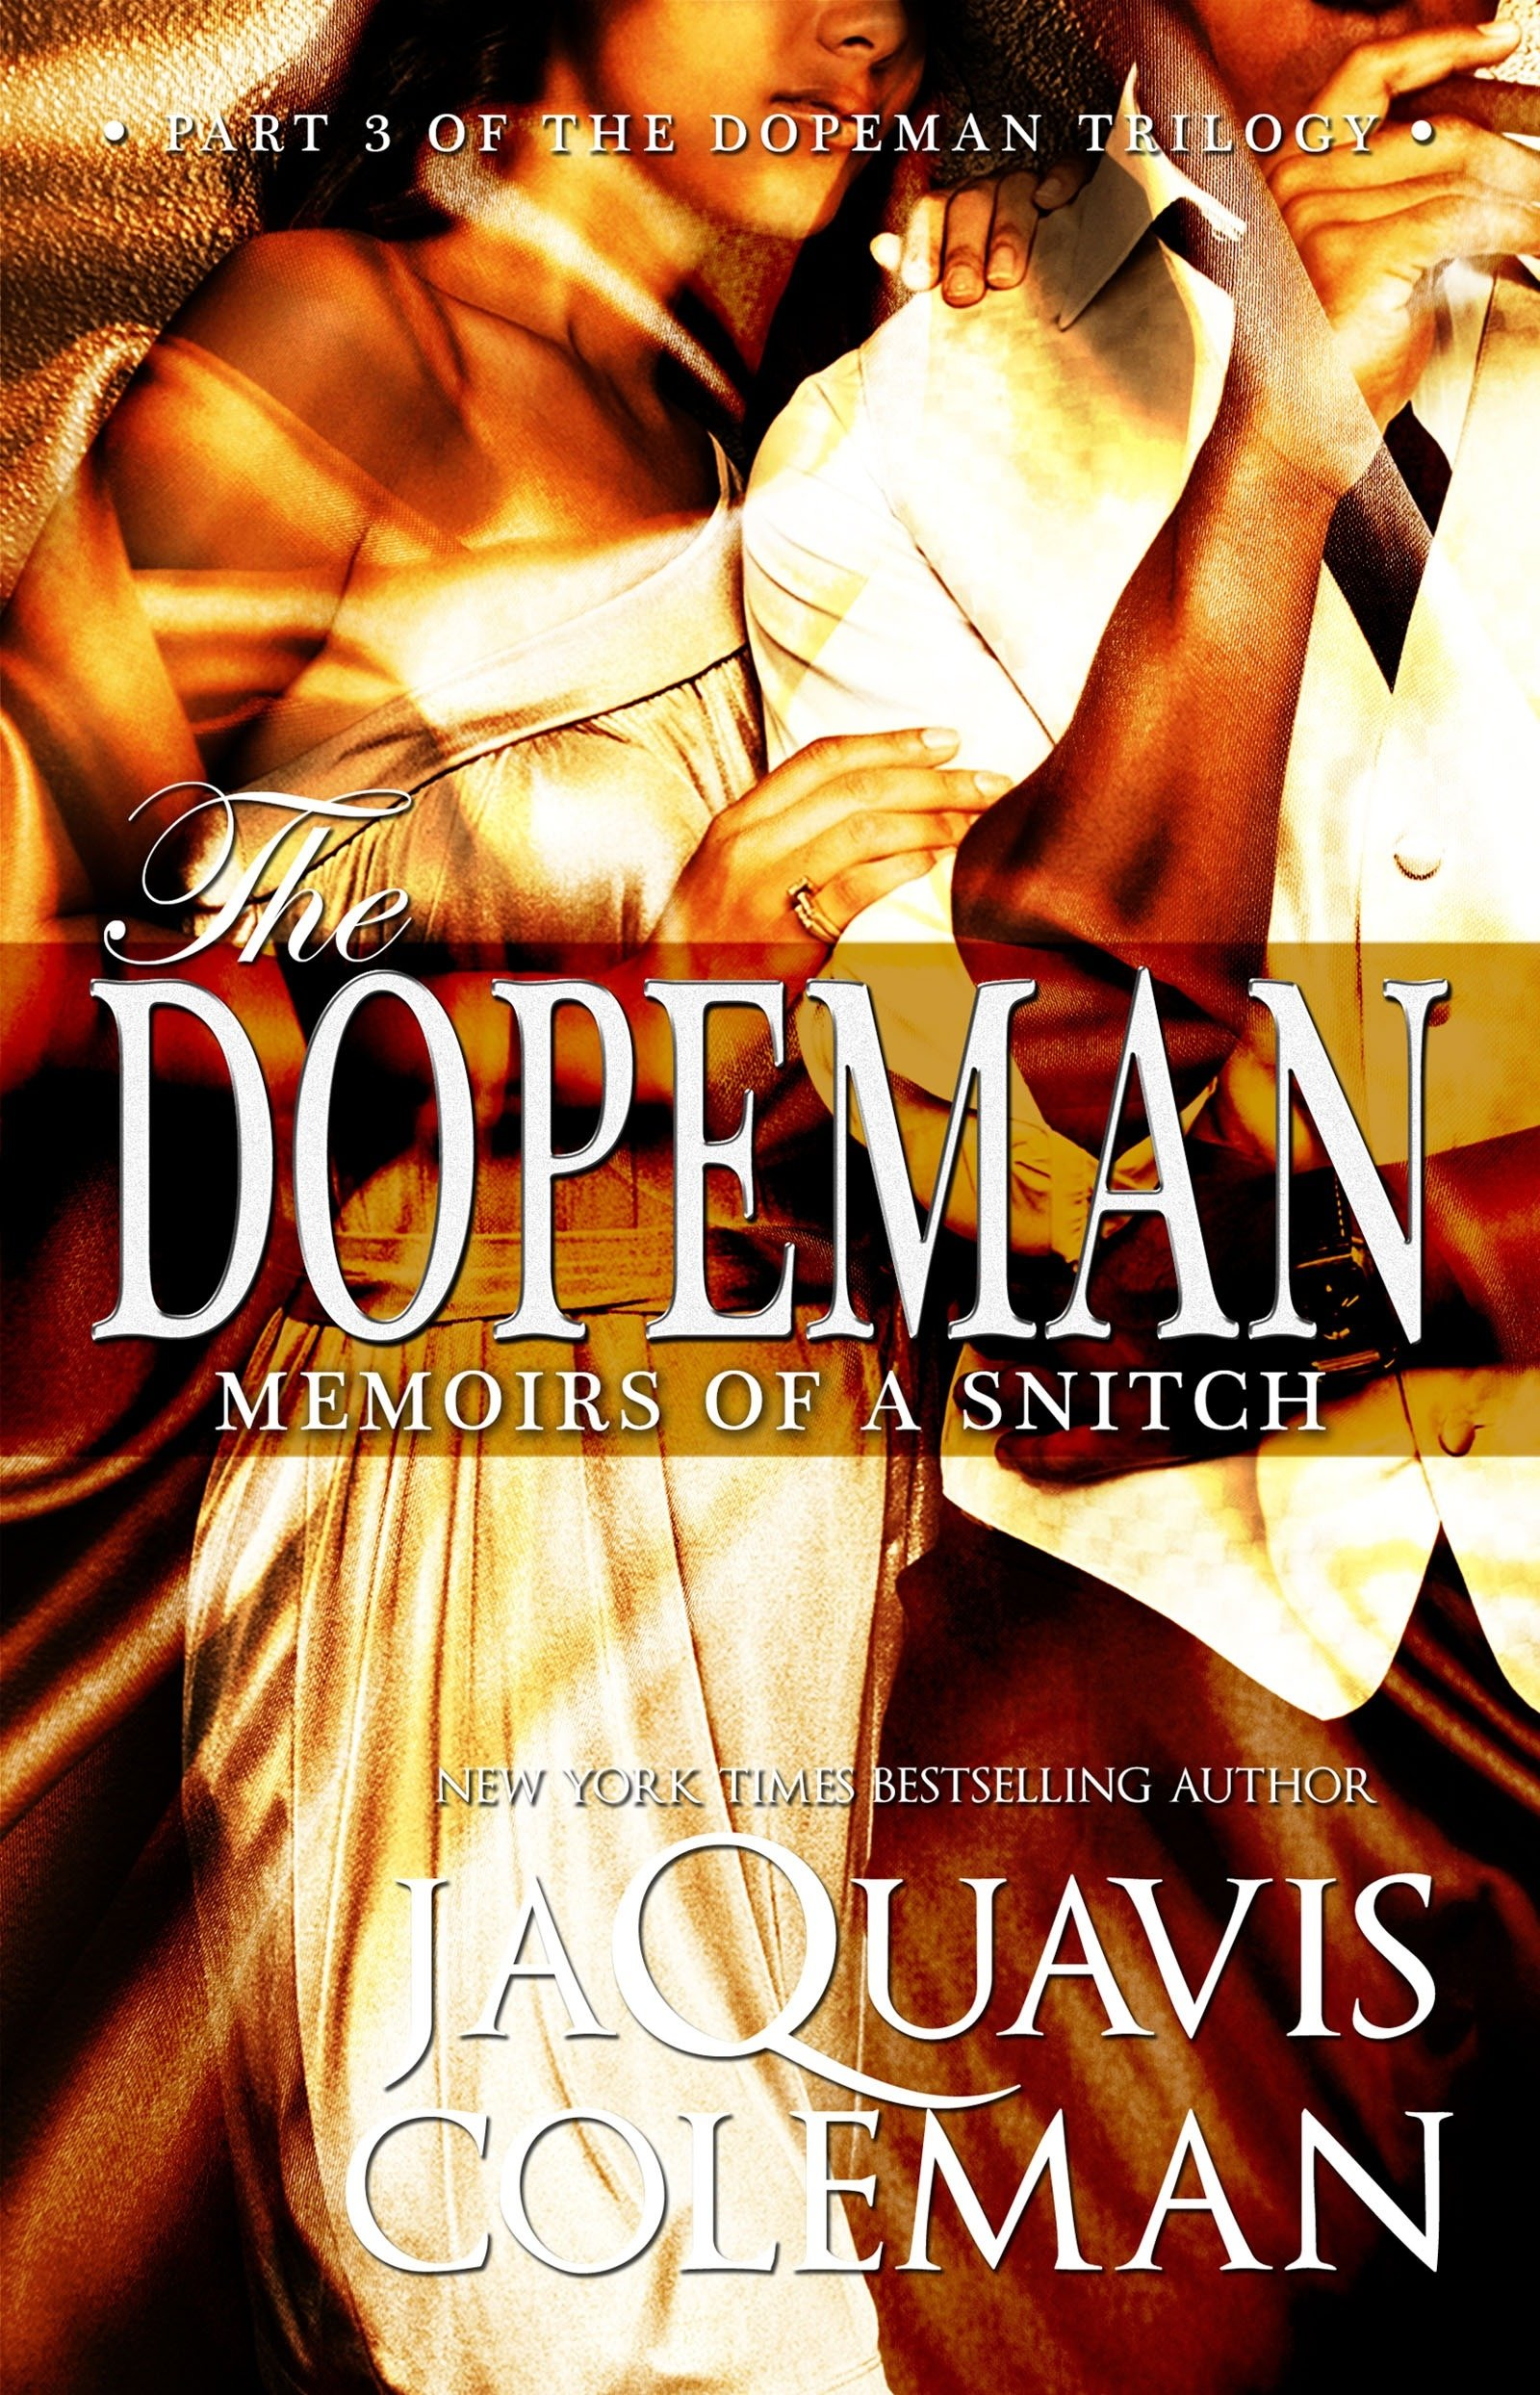 Amazon dopeman memoirs of a snitch part 3 of dopemans amazon dopeman memoirs of a snitch part 3 of dopemans trilogy 9781601626349 jaquavis coleman books fandeluxe Gallery